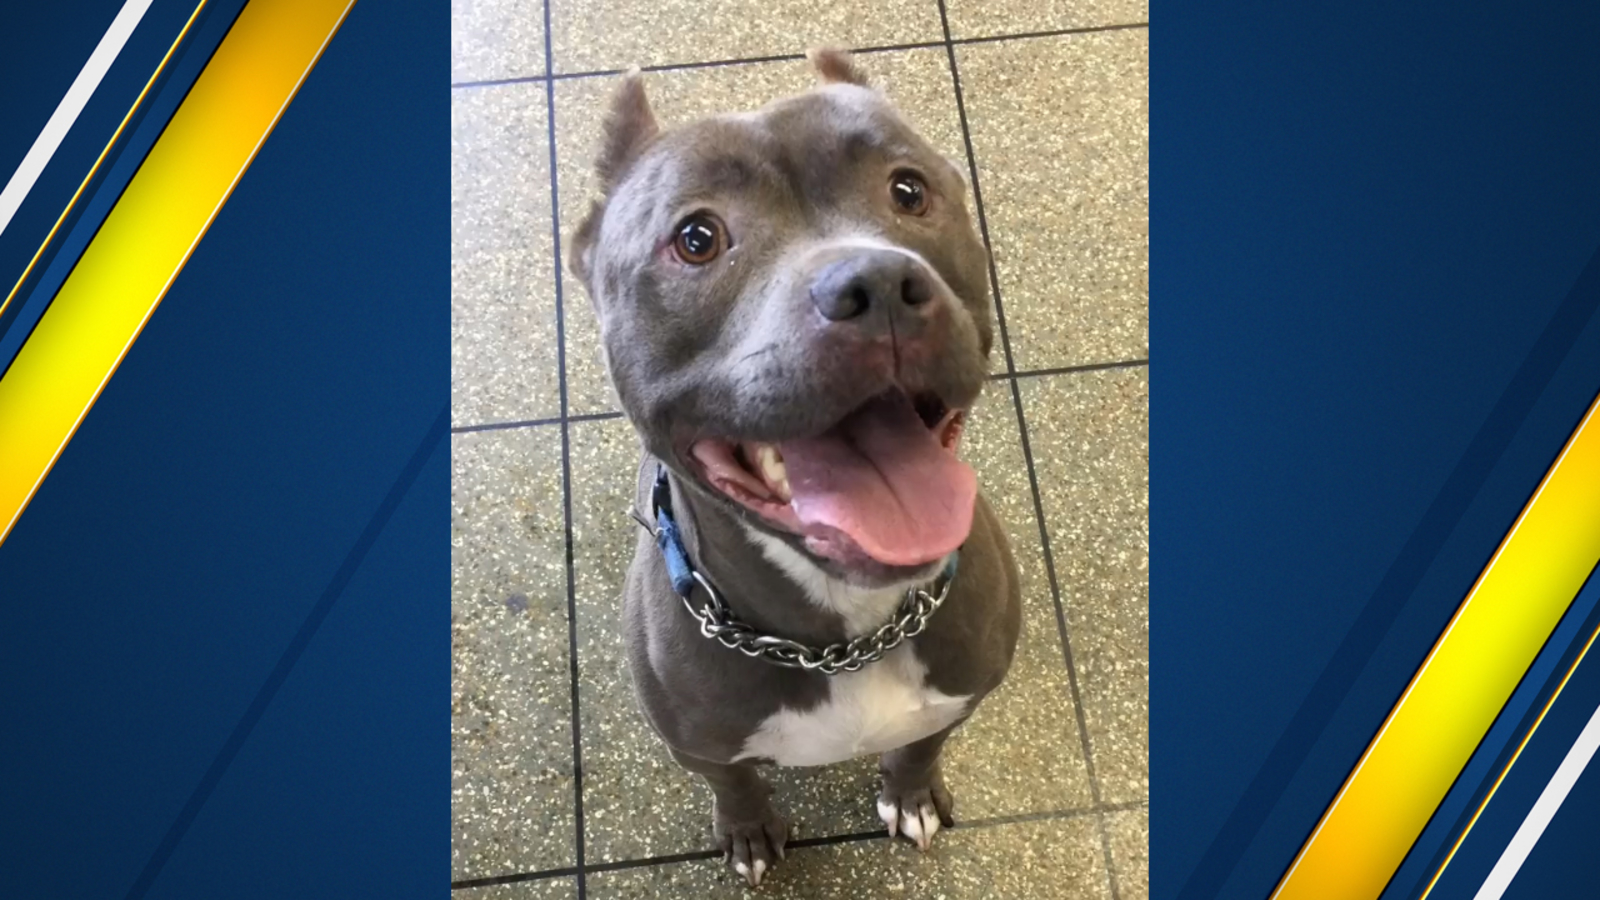 Dog finally adopted after more than 1,000 days at Valley Animal Shelter